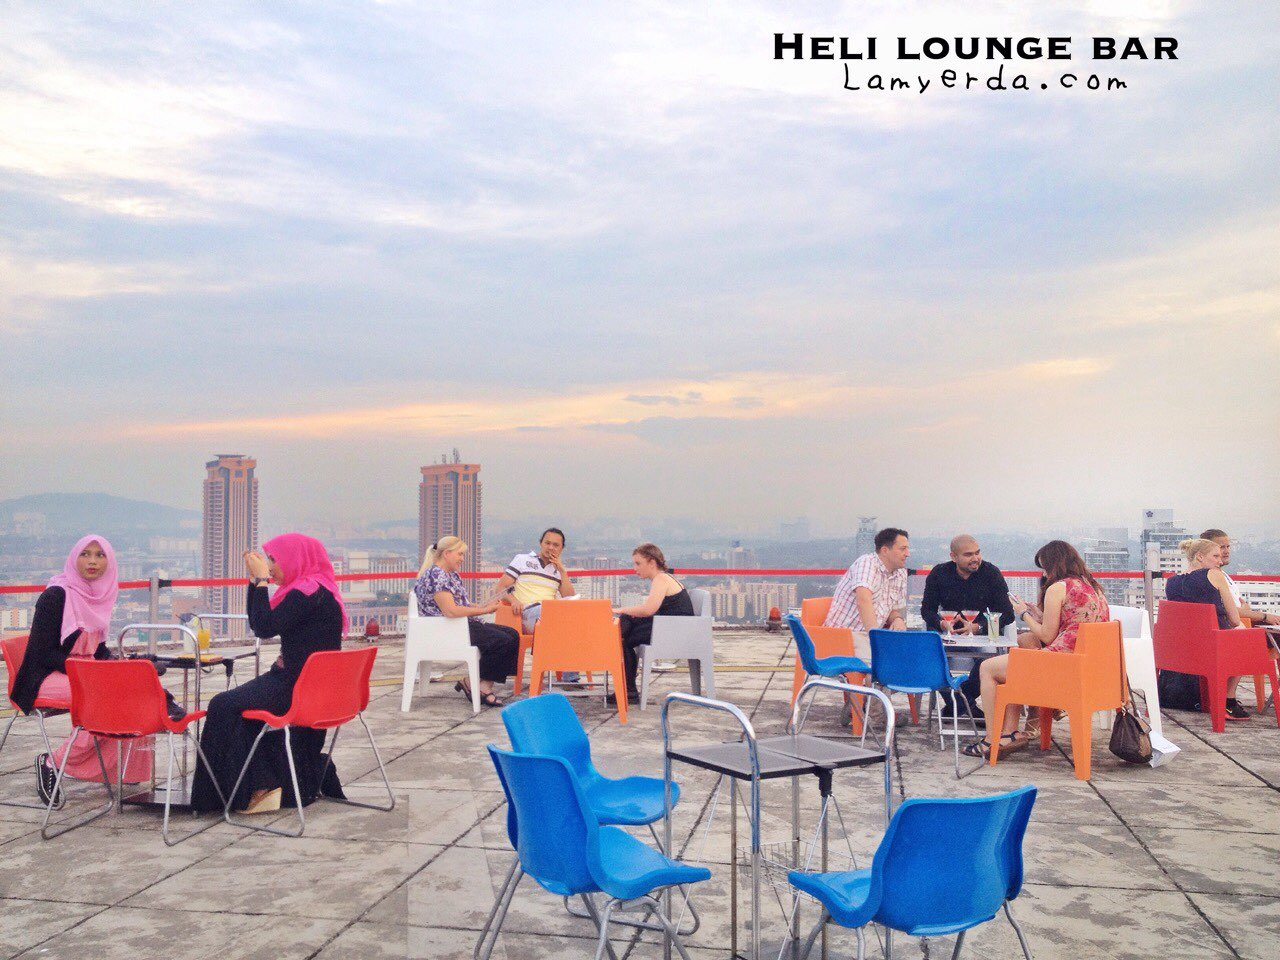 Best 360 View of KL's Skyline: Heli Lounge Bar - Lamyerda Heli Lounge Bar Review on